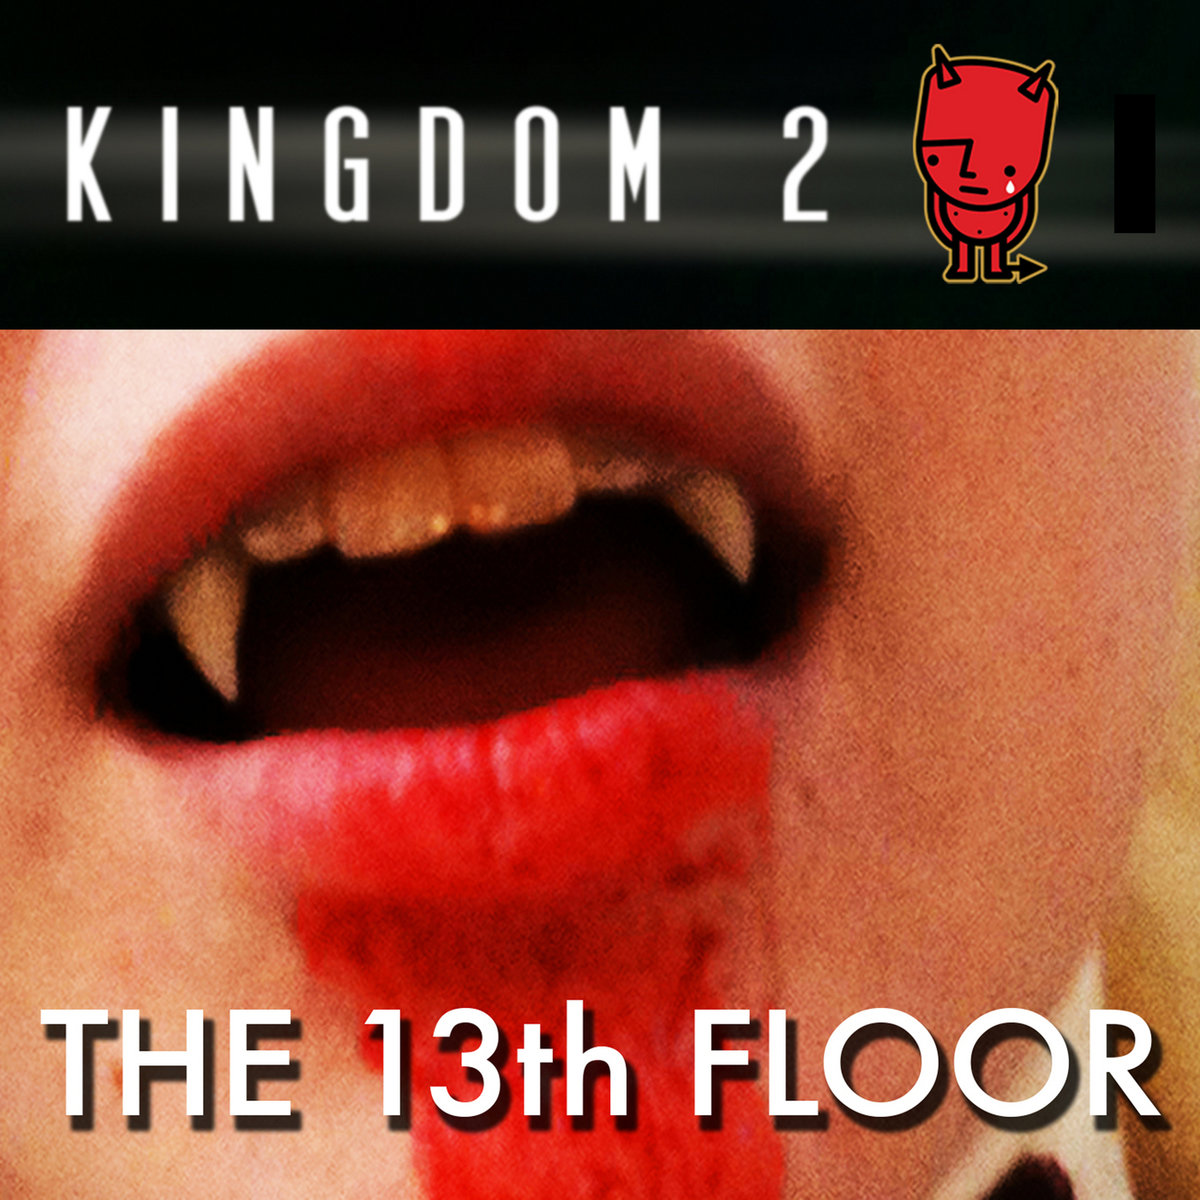 The 13th floor soundtrack from the 13th floor for 13 floor soundtrack